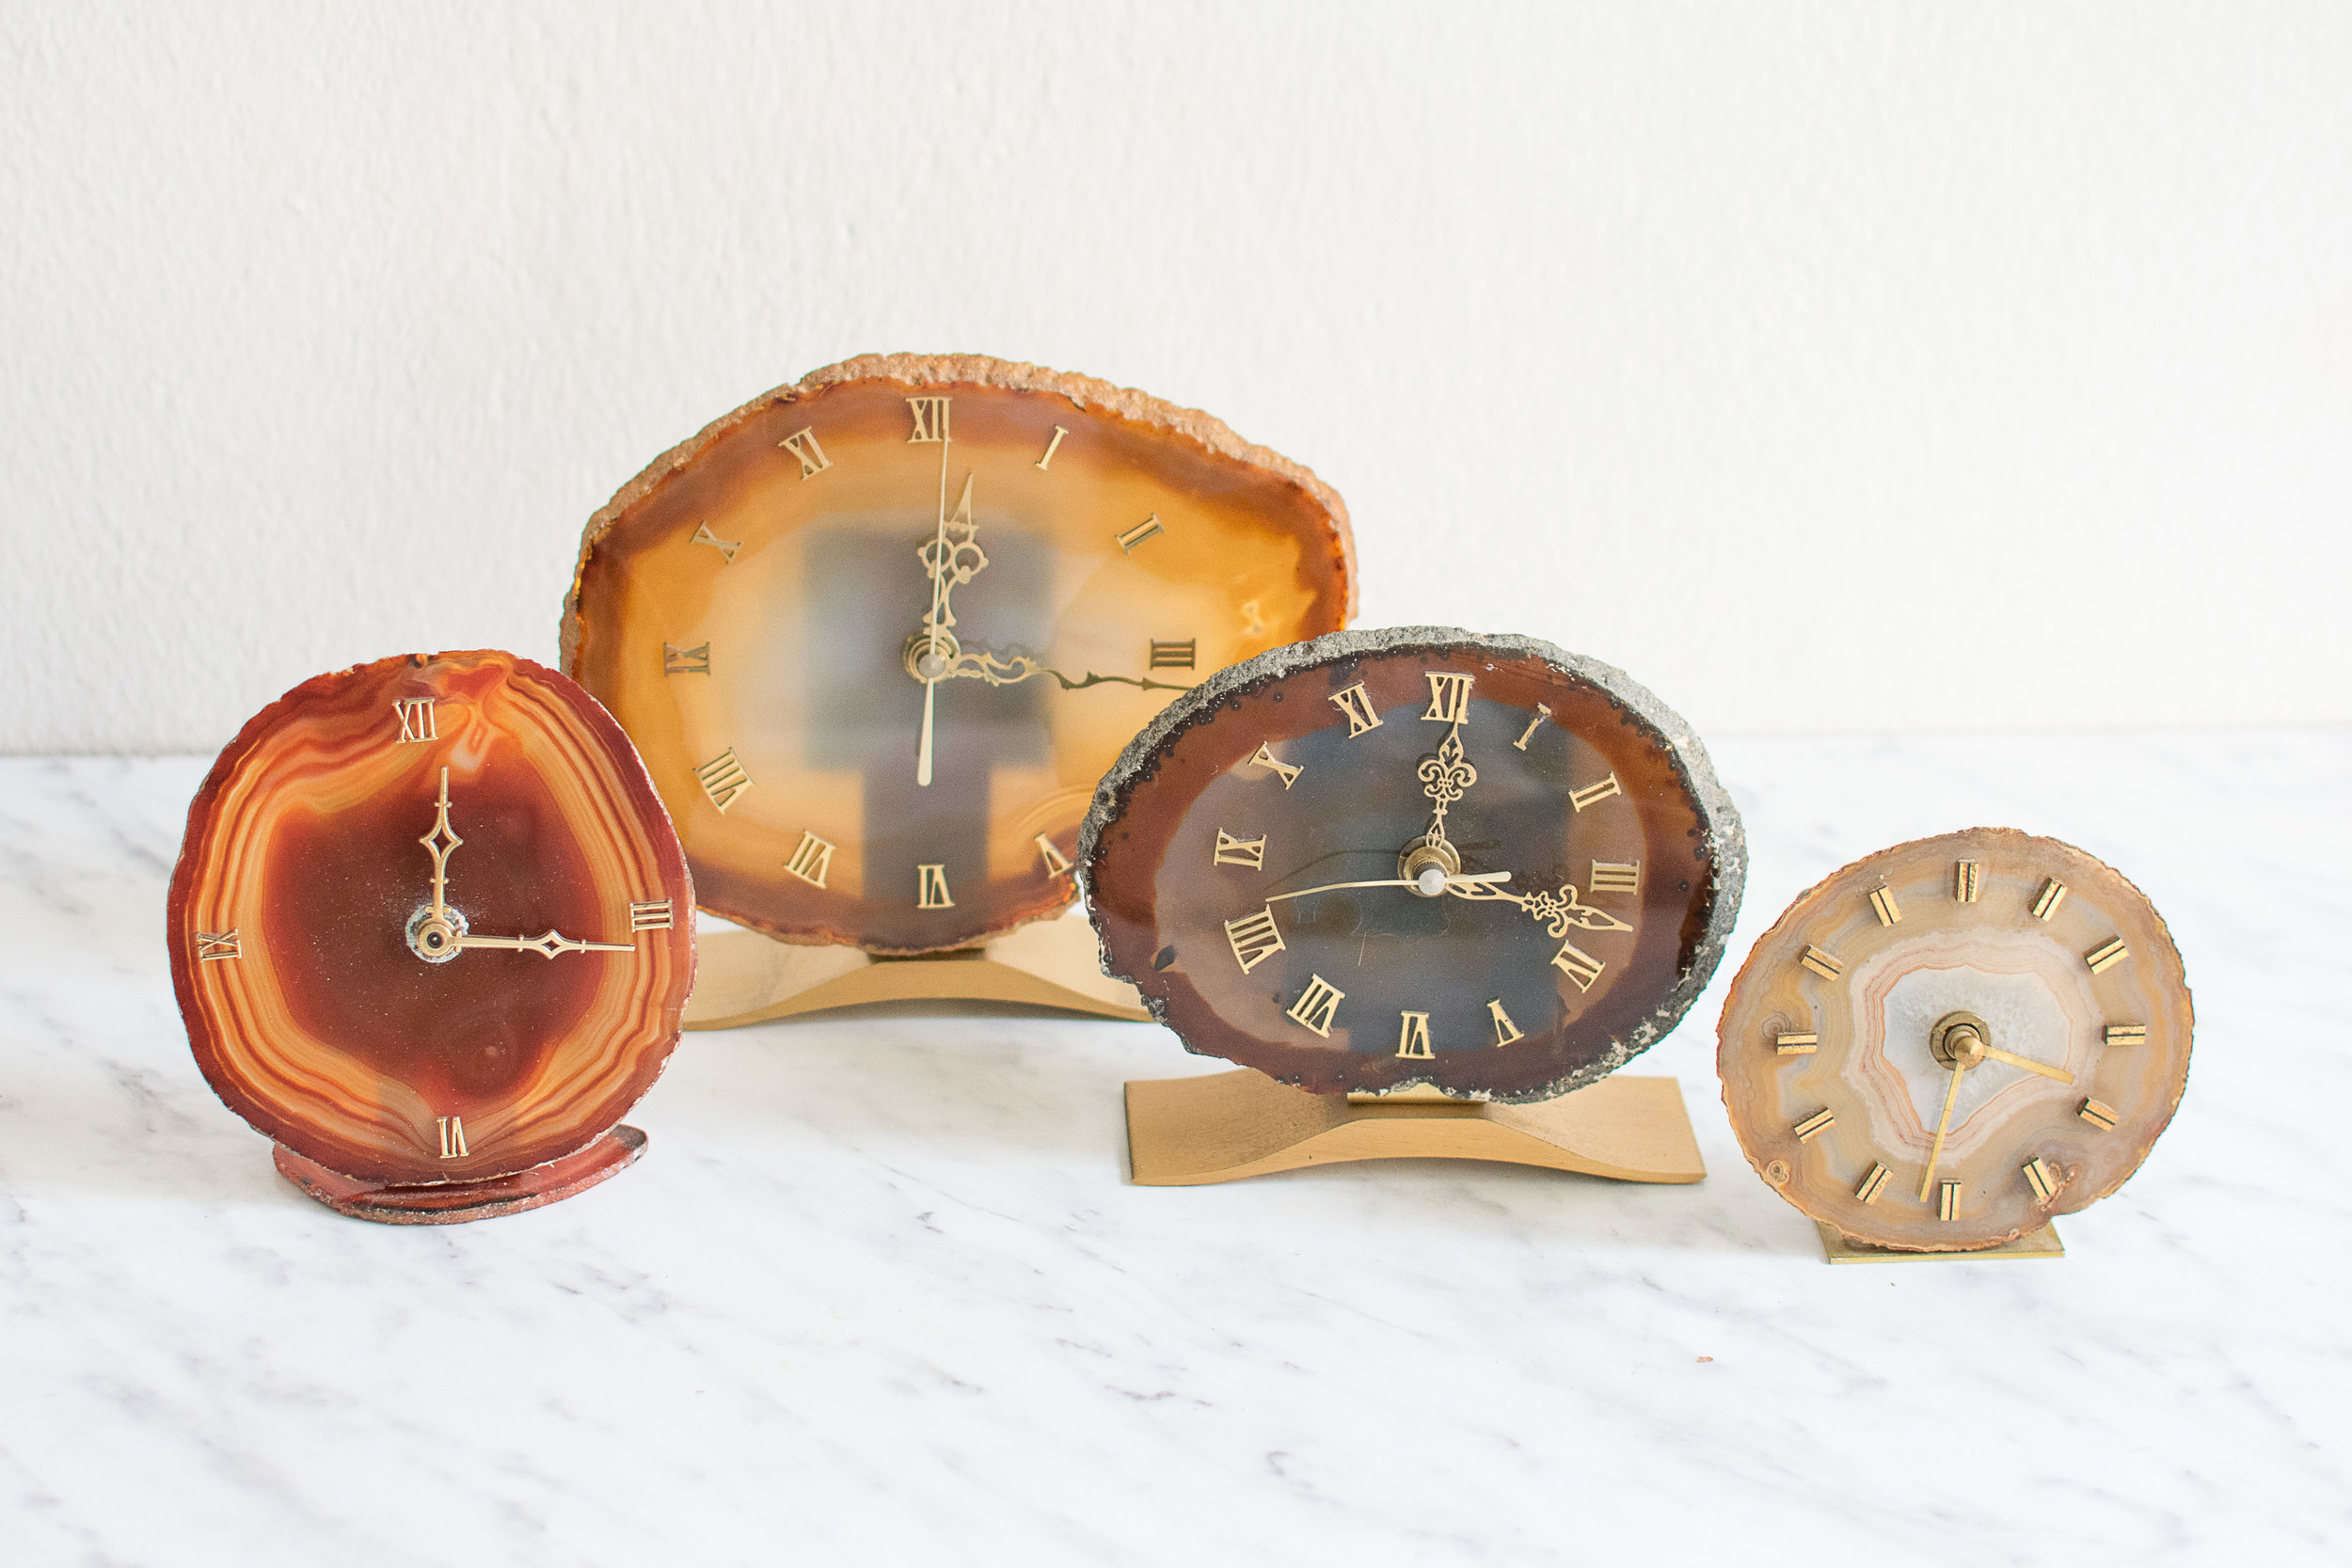 > More vintage clocks